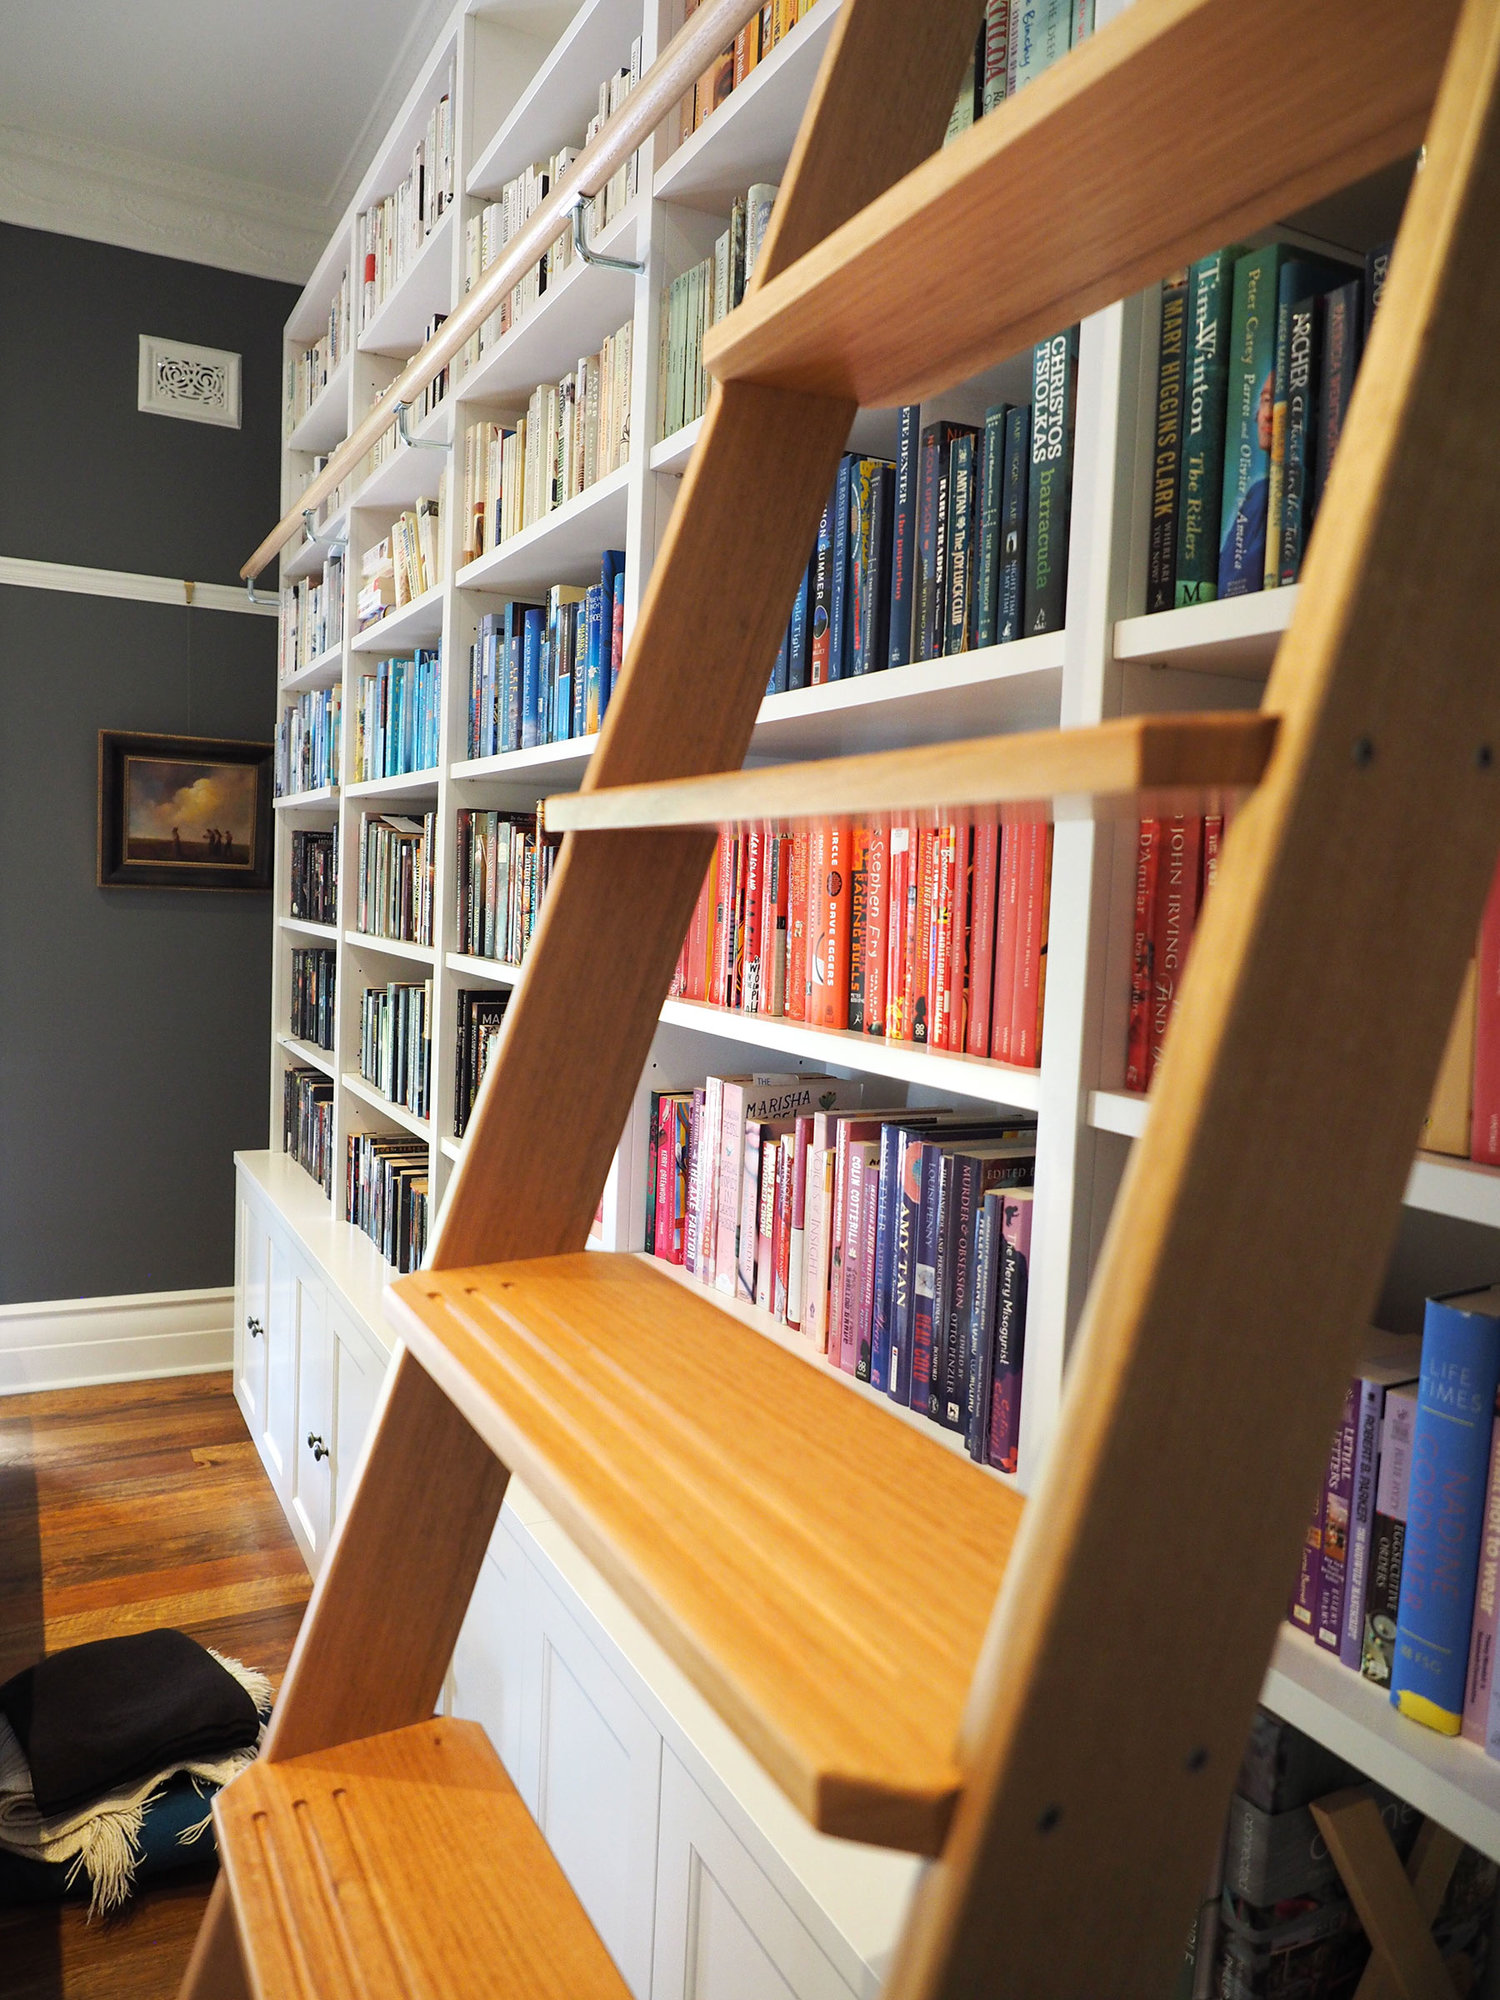 SLIDING LIBRARY LADDERS - A book-lover's dream, masses of custom-built bookcases were tucked into every spot we could find - complete with a hand-made oak sliding ladder to reach all those lovely books.